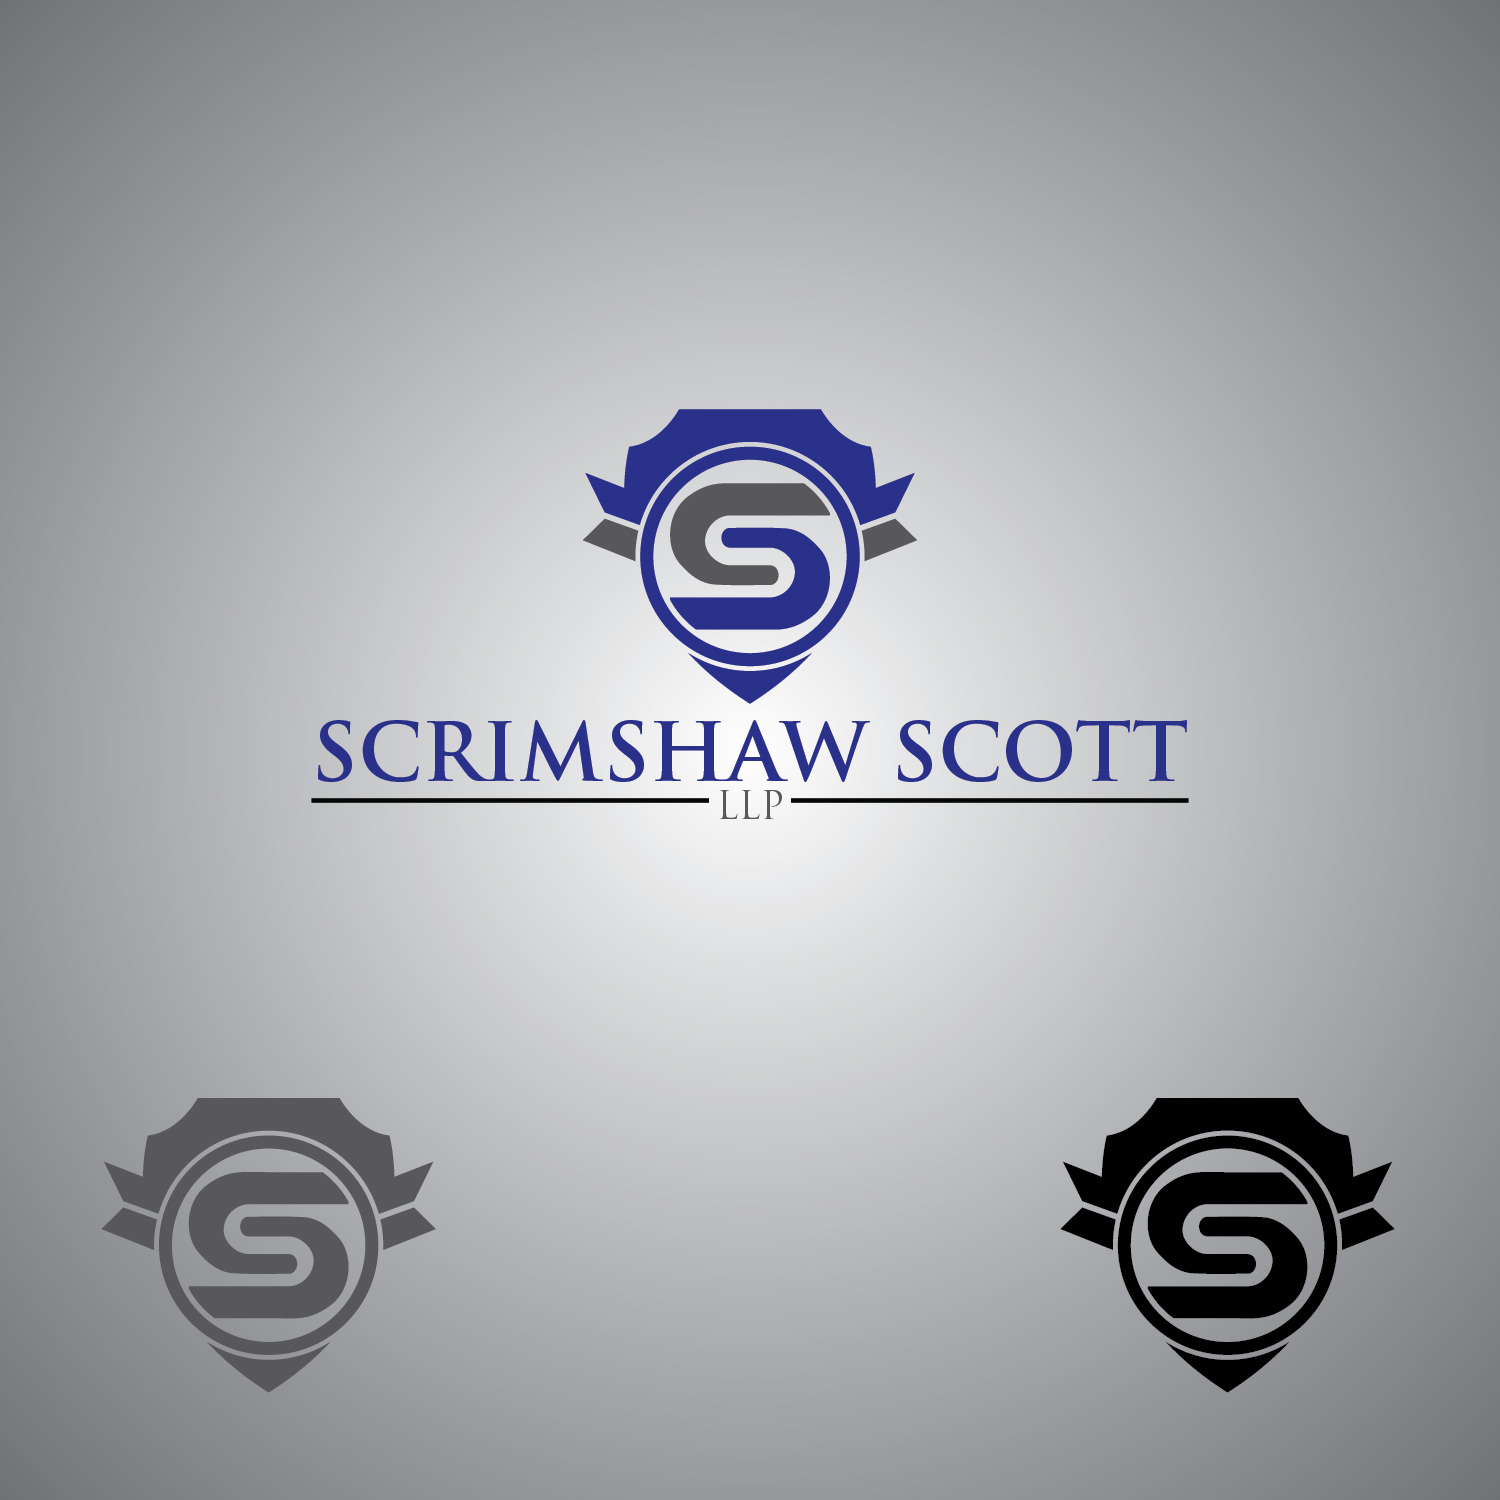 Logo Design by lagalag - Entry No. 109 in the Logo Design Contest Creative Logo Design for Scrimshaw Scott LLP.